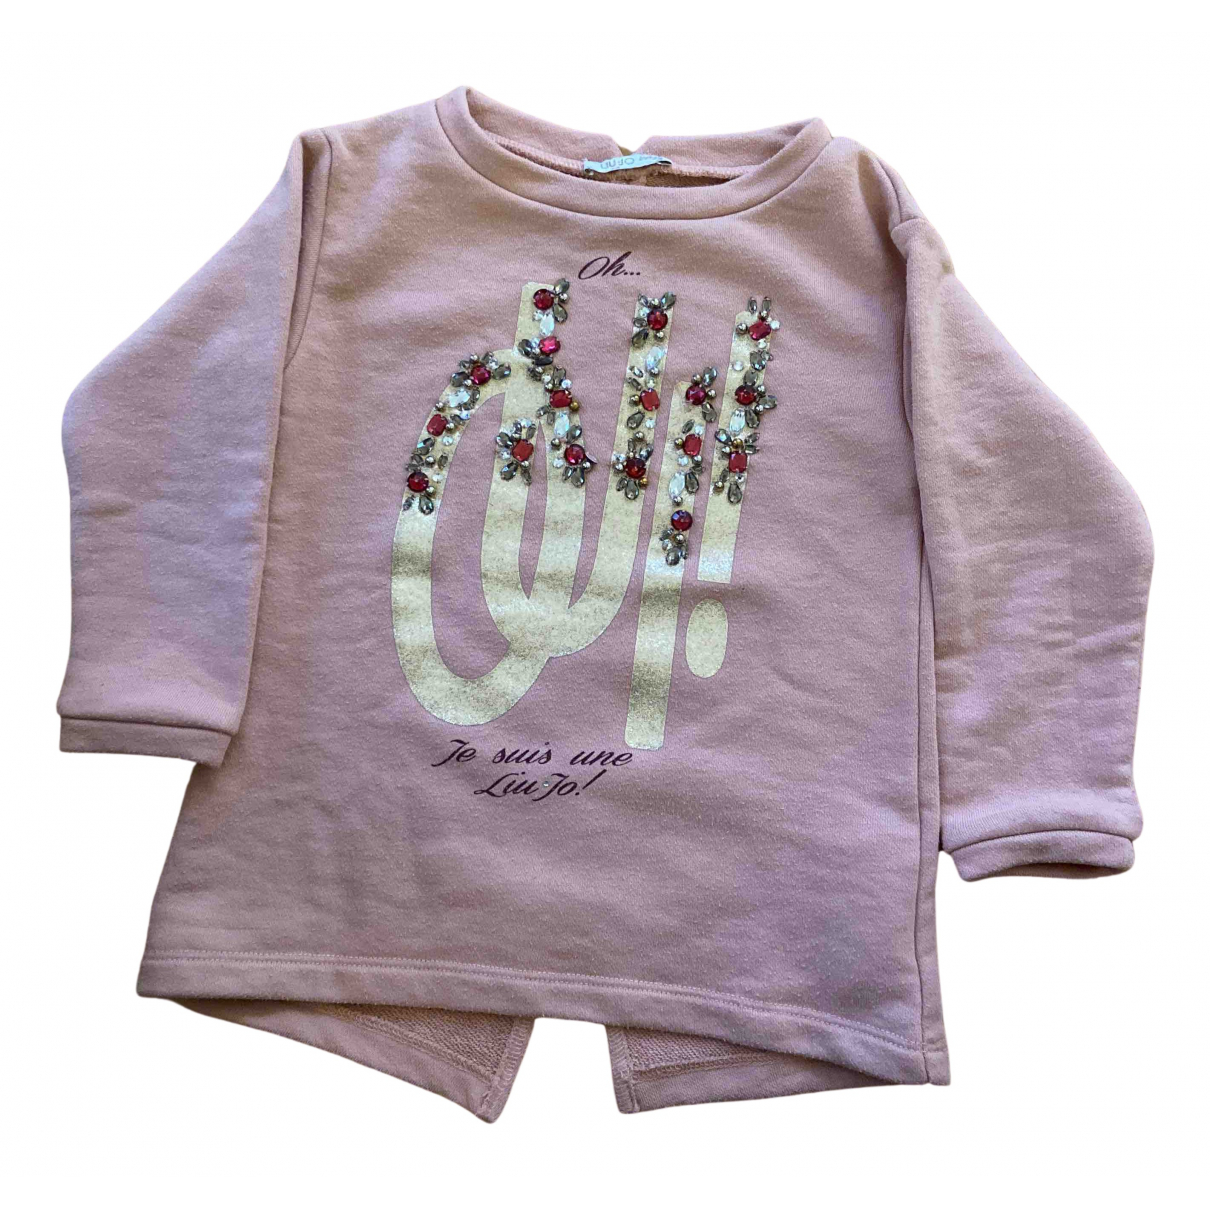 Liu.jo N Pink Knitwear for Kids 2 years - up to 86cm FR